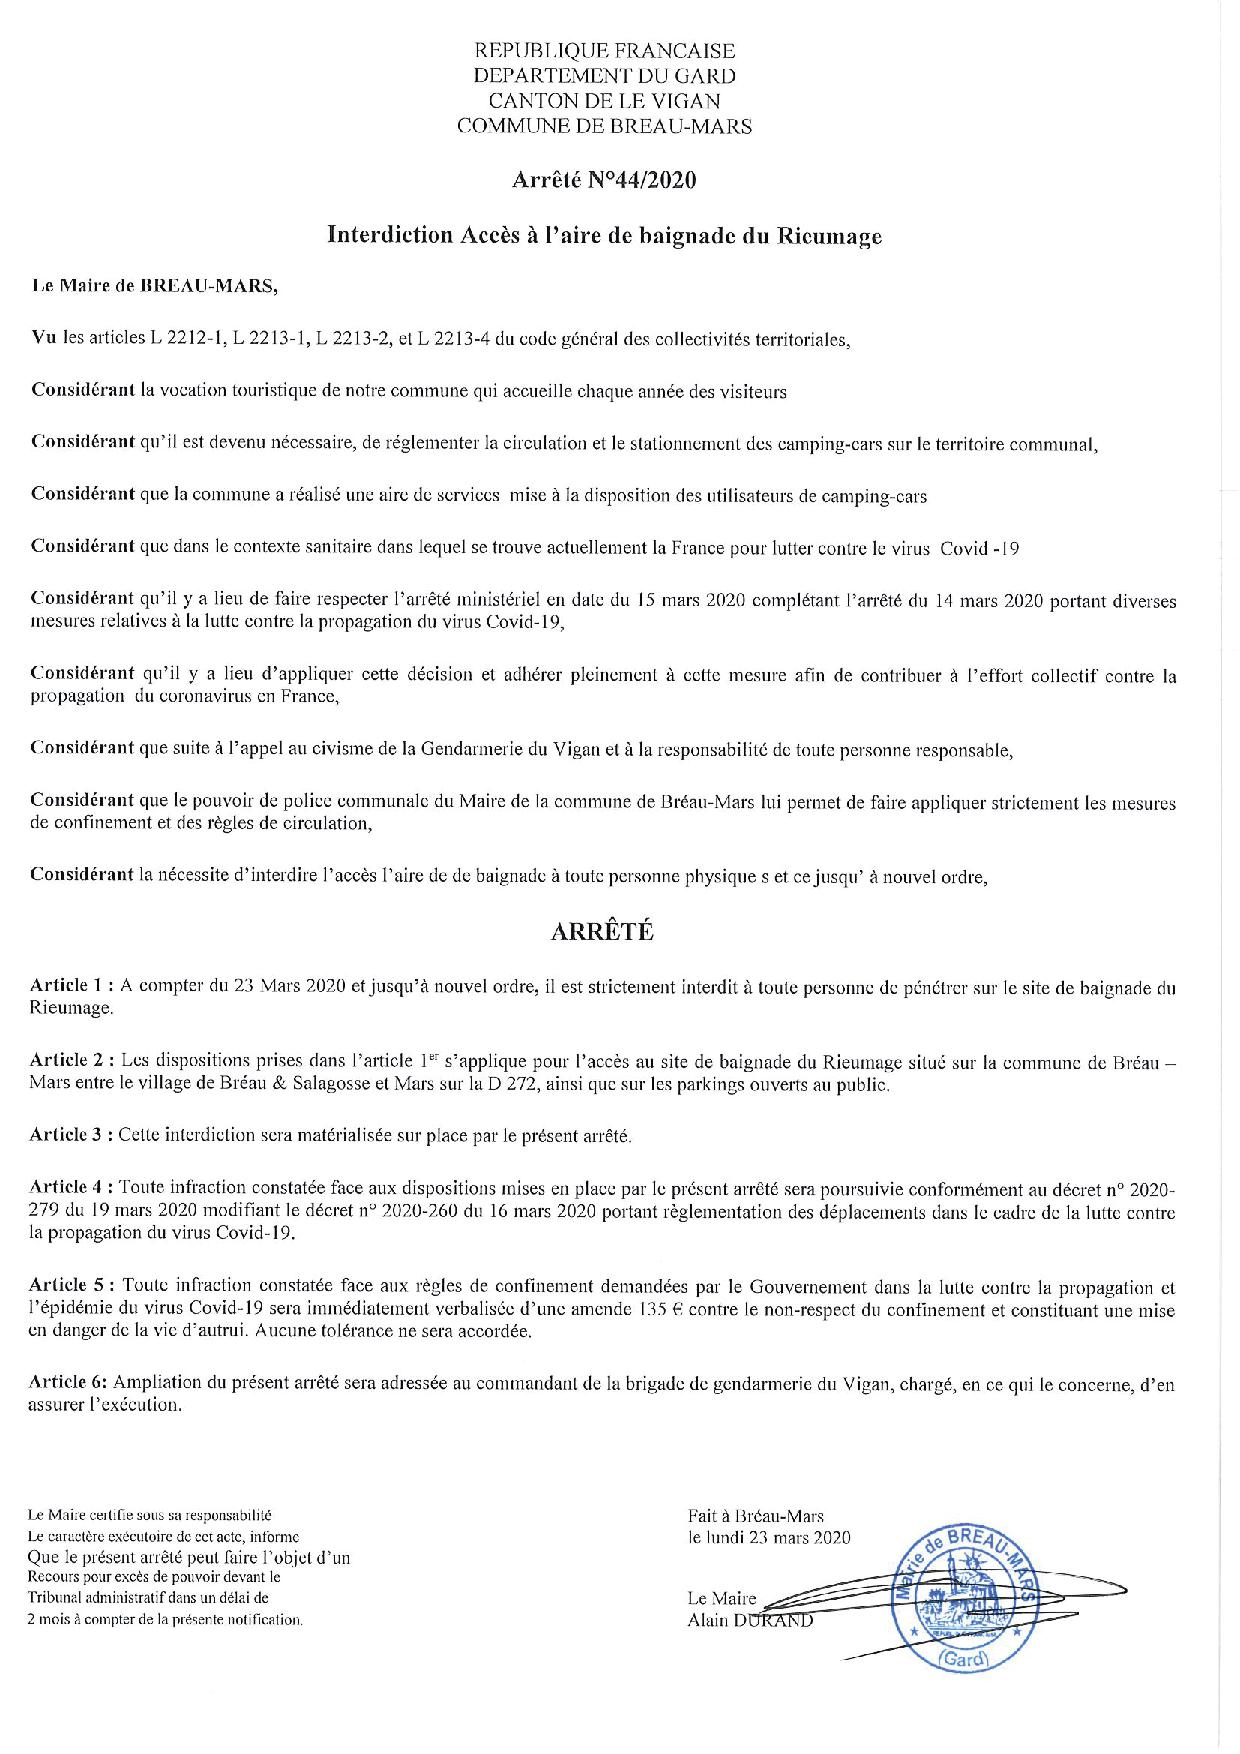 INTERDICTION ACCES SITE DU RIEUMAGE